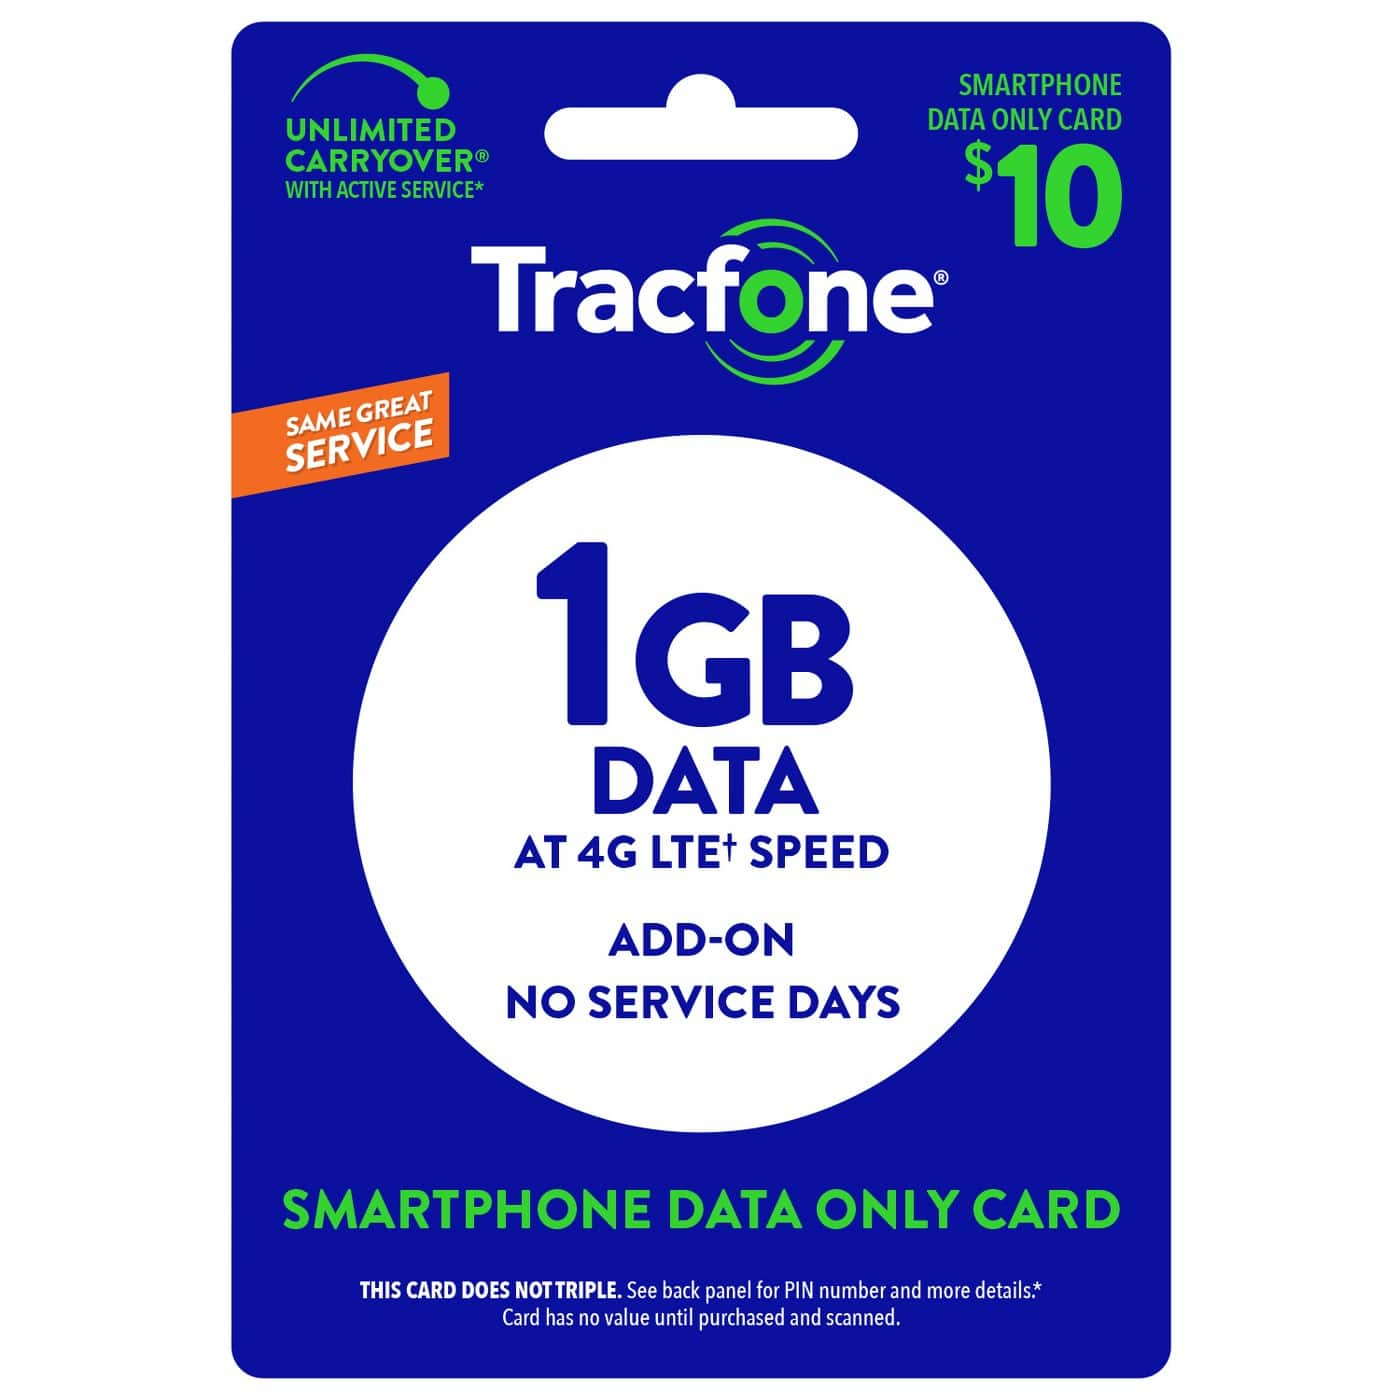 tracfone data deal targetcom 10 or less for 15gb